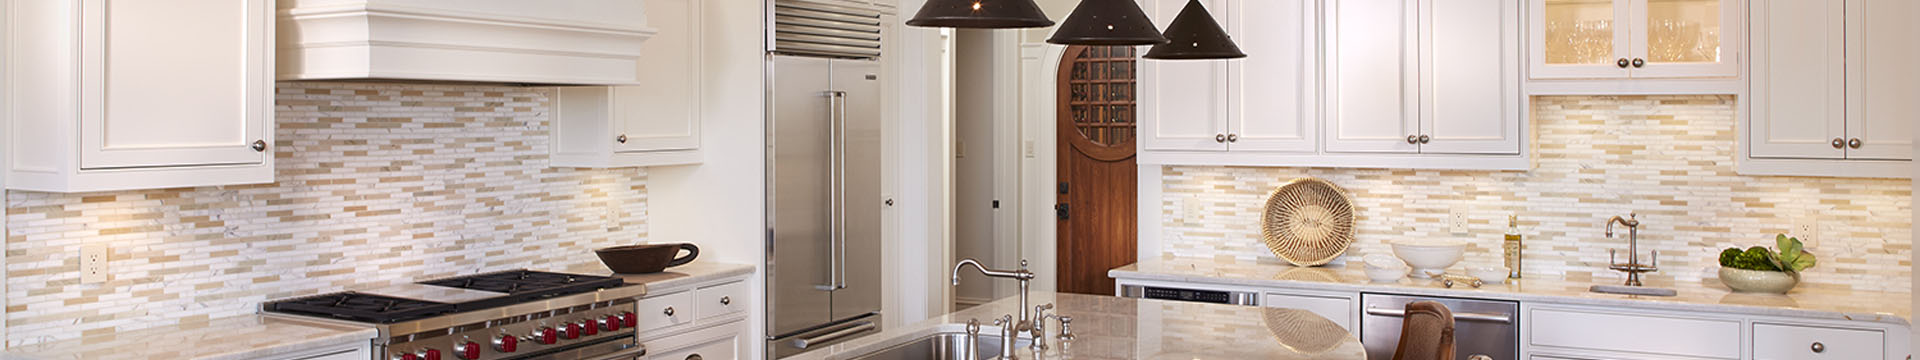 Kitchen - Camens Architectural Group - Charleston, SC